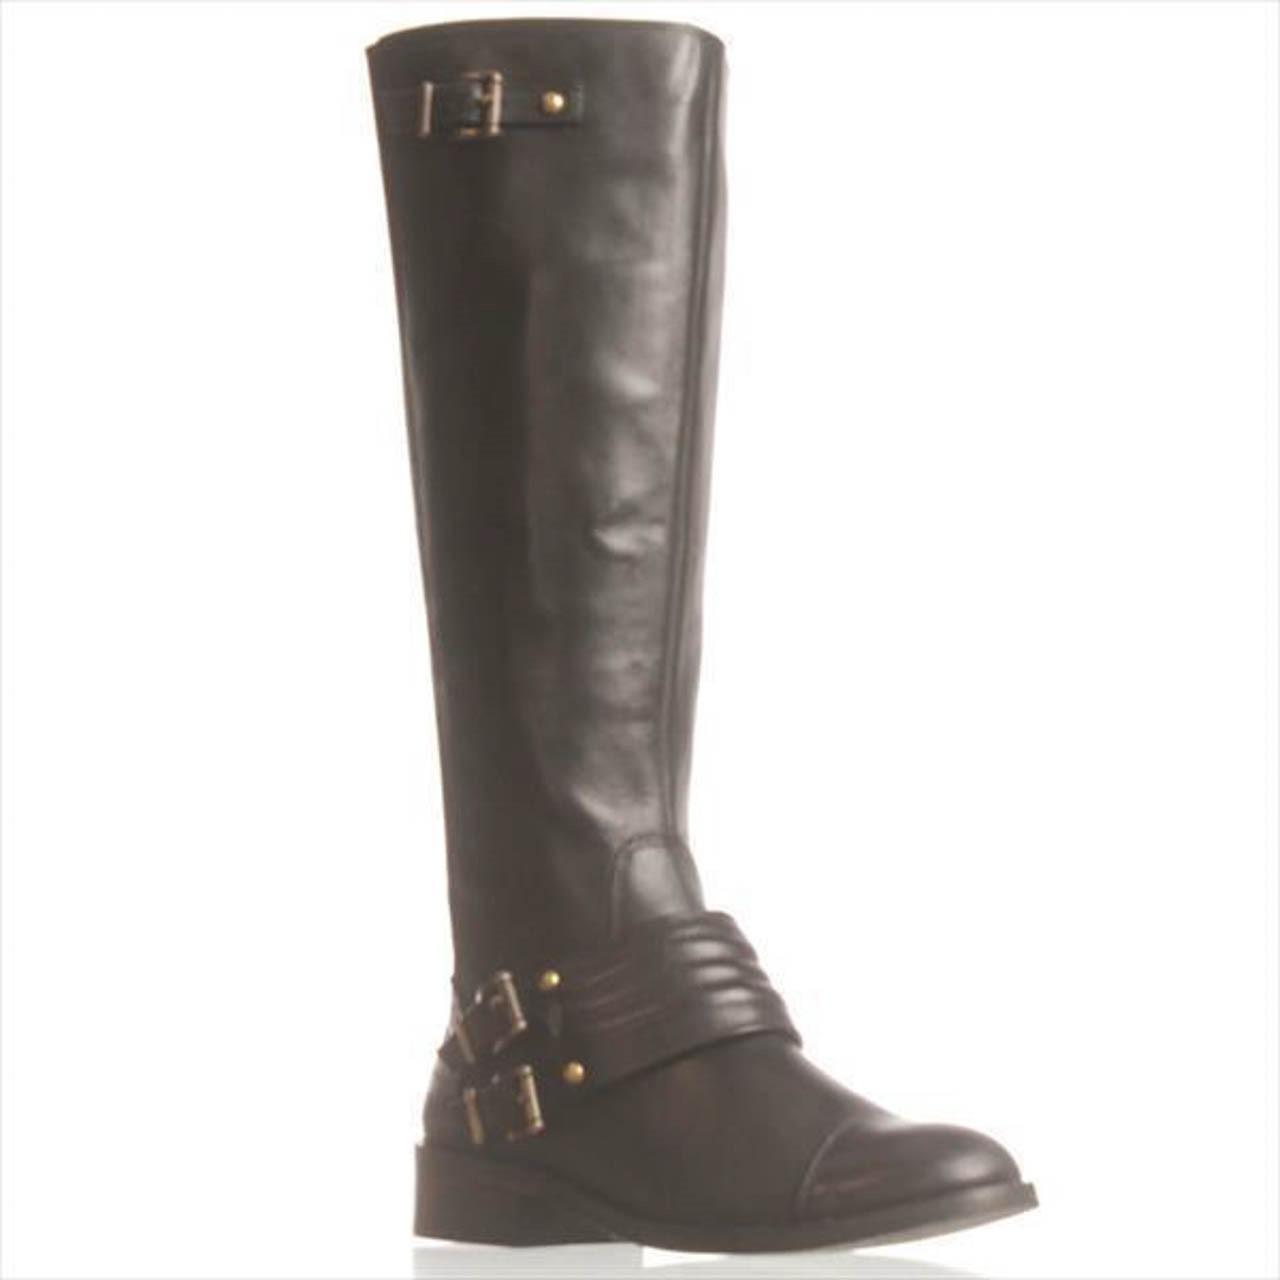 b0a773589766 Lyst - Jessica Simpson Elmont2 Wide Calf Riding Boots - in Black